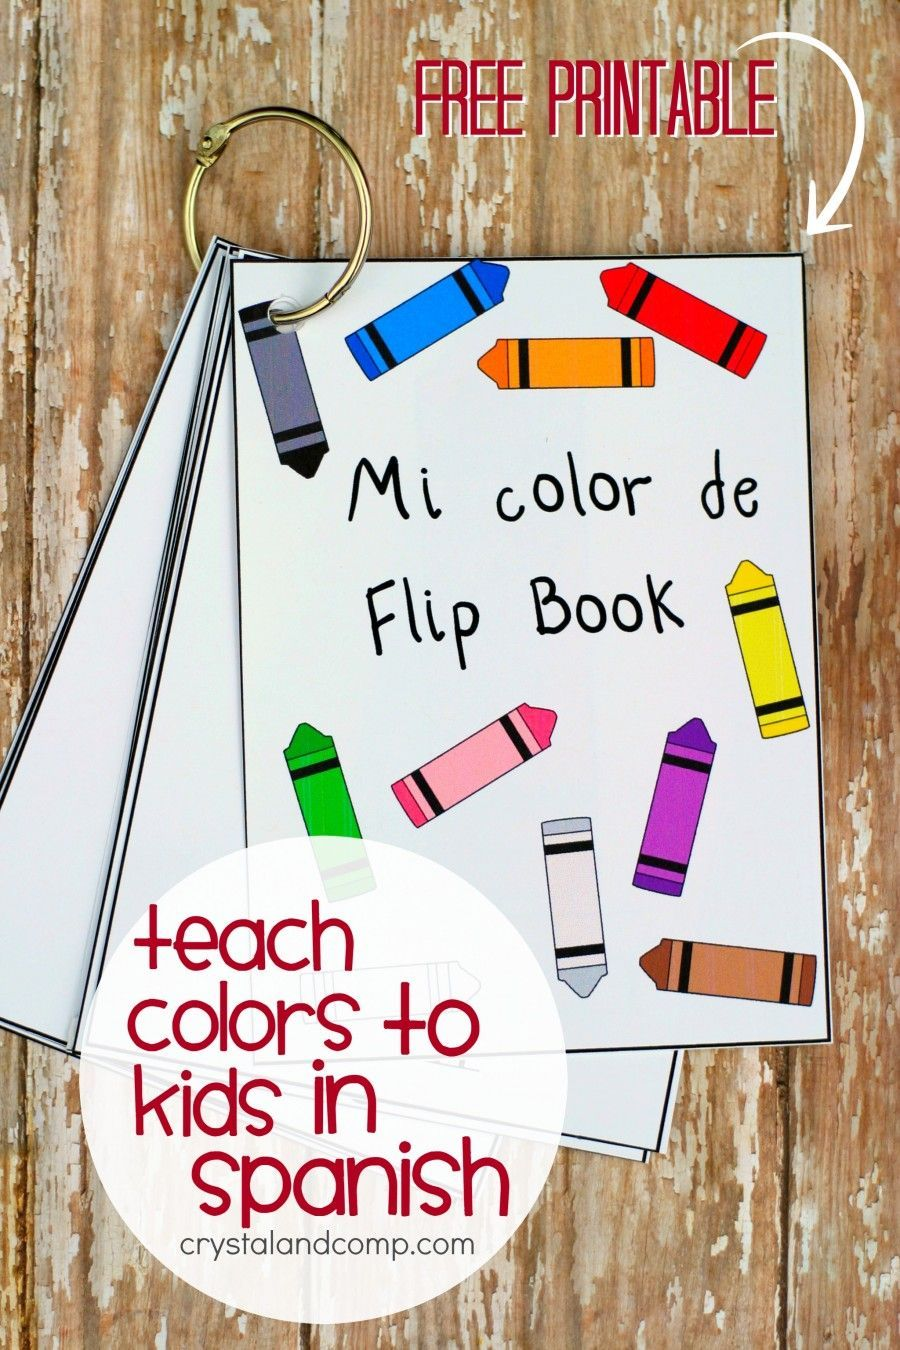 Use This Flip Book To Teach Your Child Their Colors In Spanish Learnspanish Spanish Lessons For Kids Teaching Colors Spanish Kids [ 1350 x 900 Pixel ]